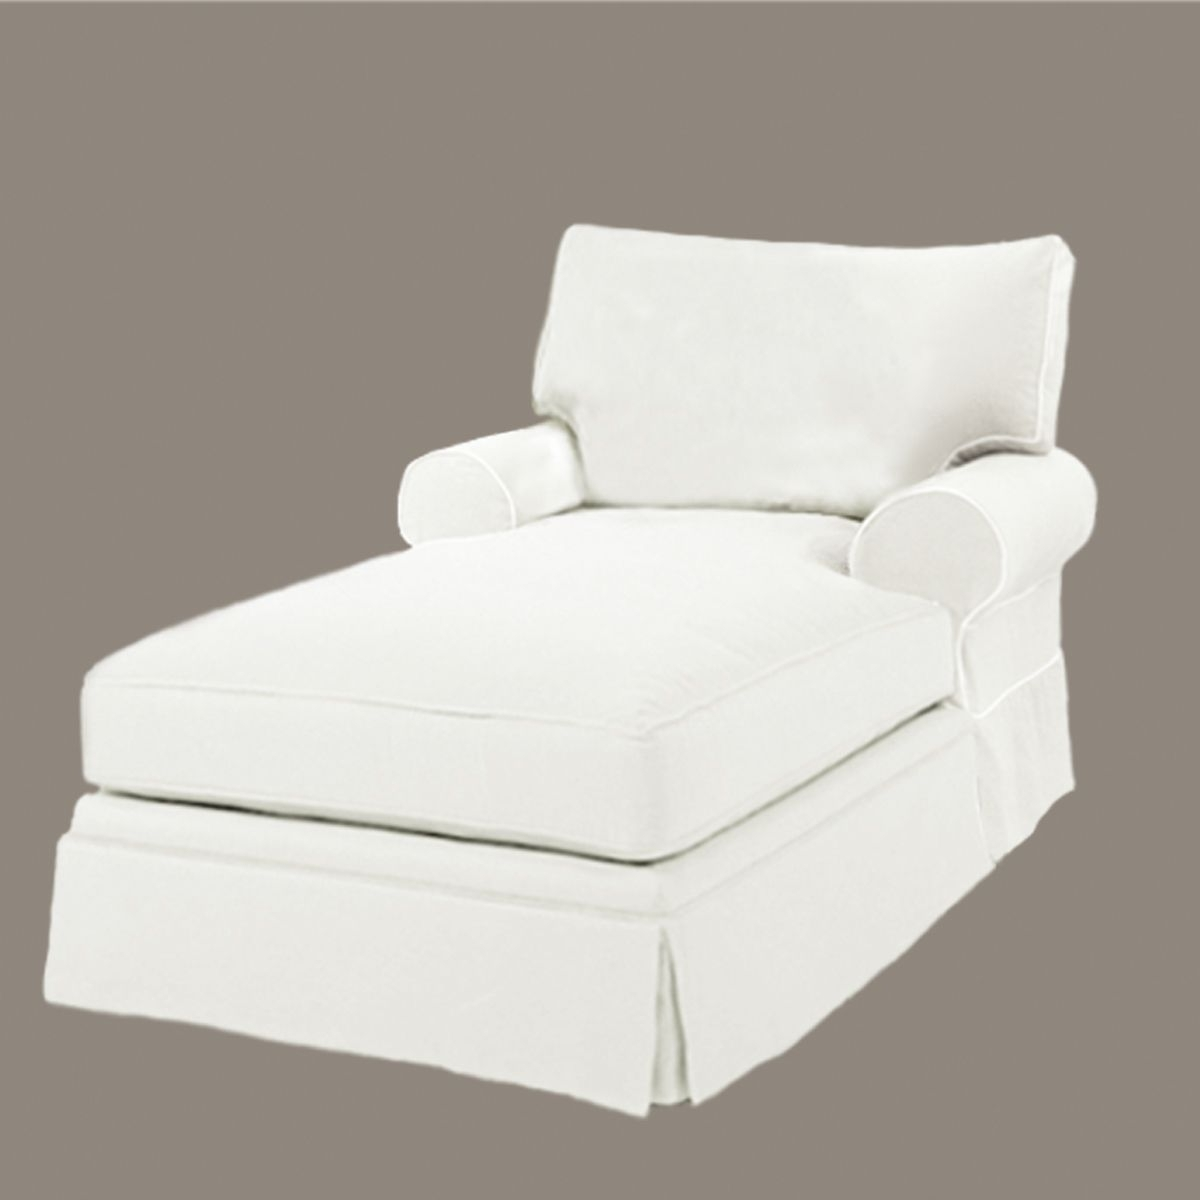 Indoor Chaise Lounge Chairs – Home Designs Ideas Online In Most Recent Chaise Lounge Chairs For Indoor (View 8 of 15)